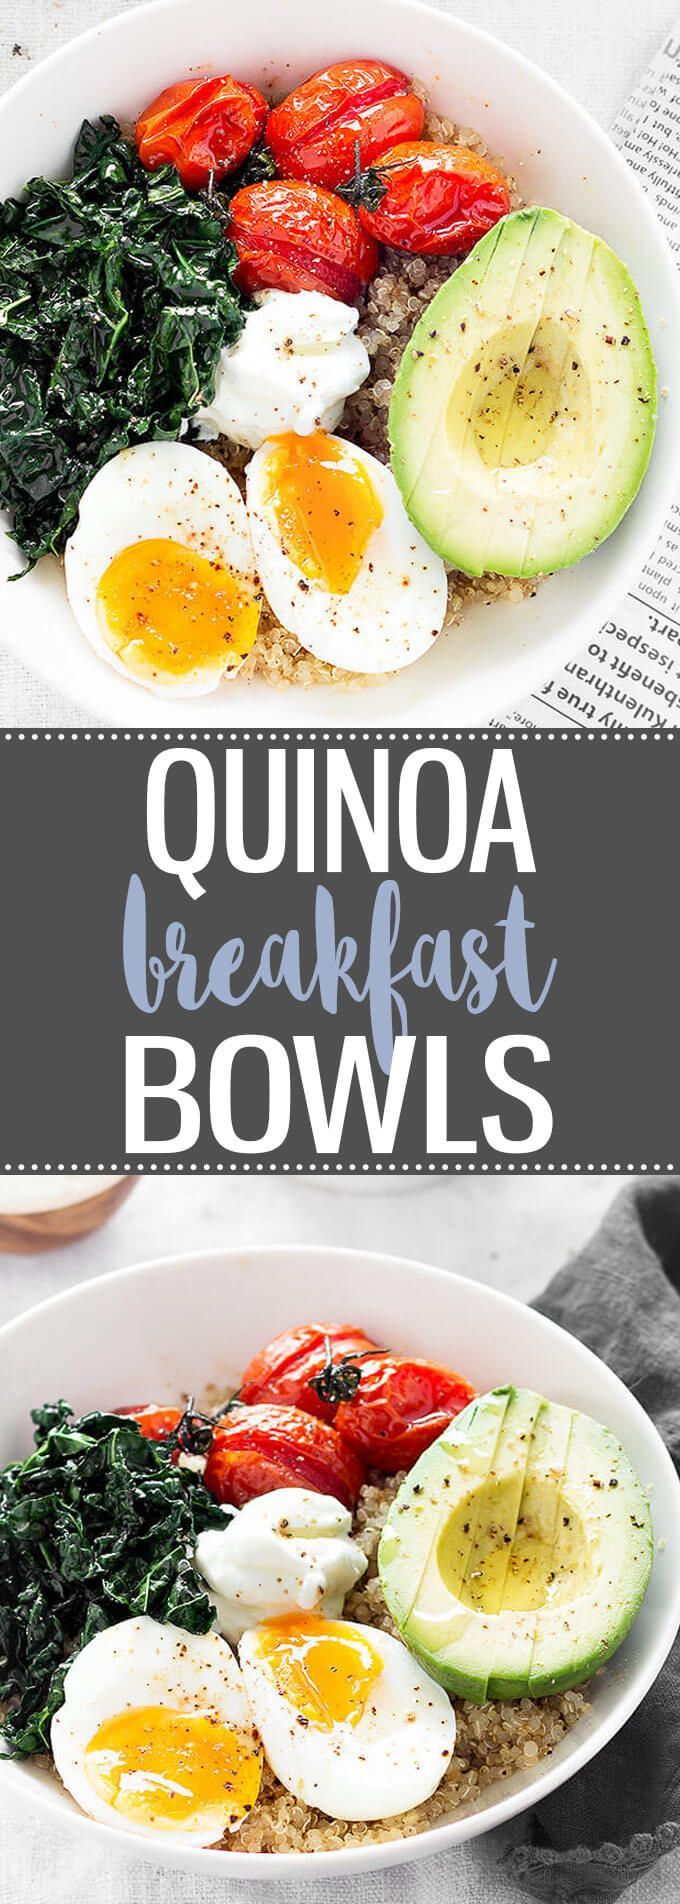 Savory Quinoa Breakfast Bowls - A hearty breakfast bowl great for breakfast, brunch, or even dinner! via /easyasapplepie/